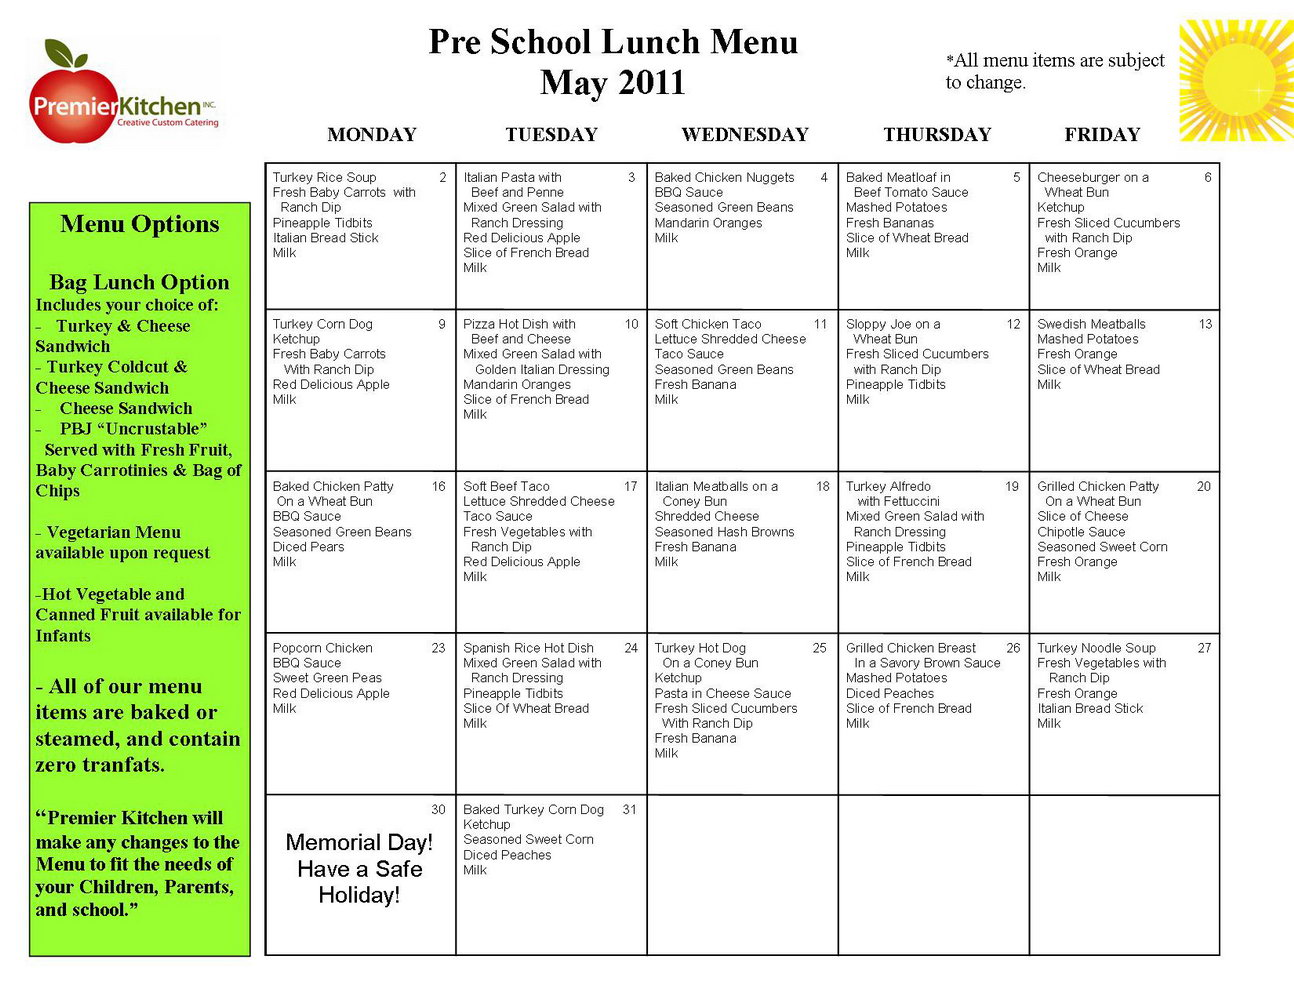 picture regarding Free Printable Daycare Menus referred to as No cost Printable Daycare Menu Template - Templates #MjMxNTI